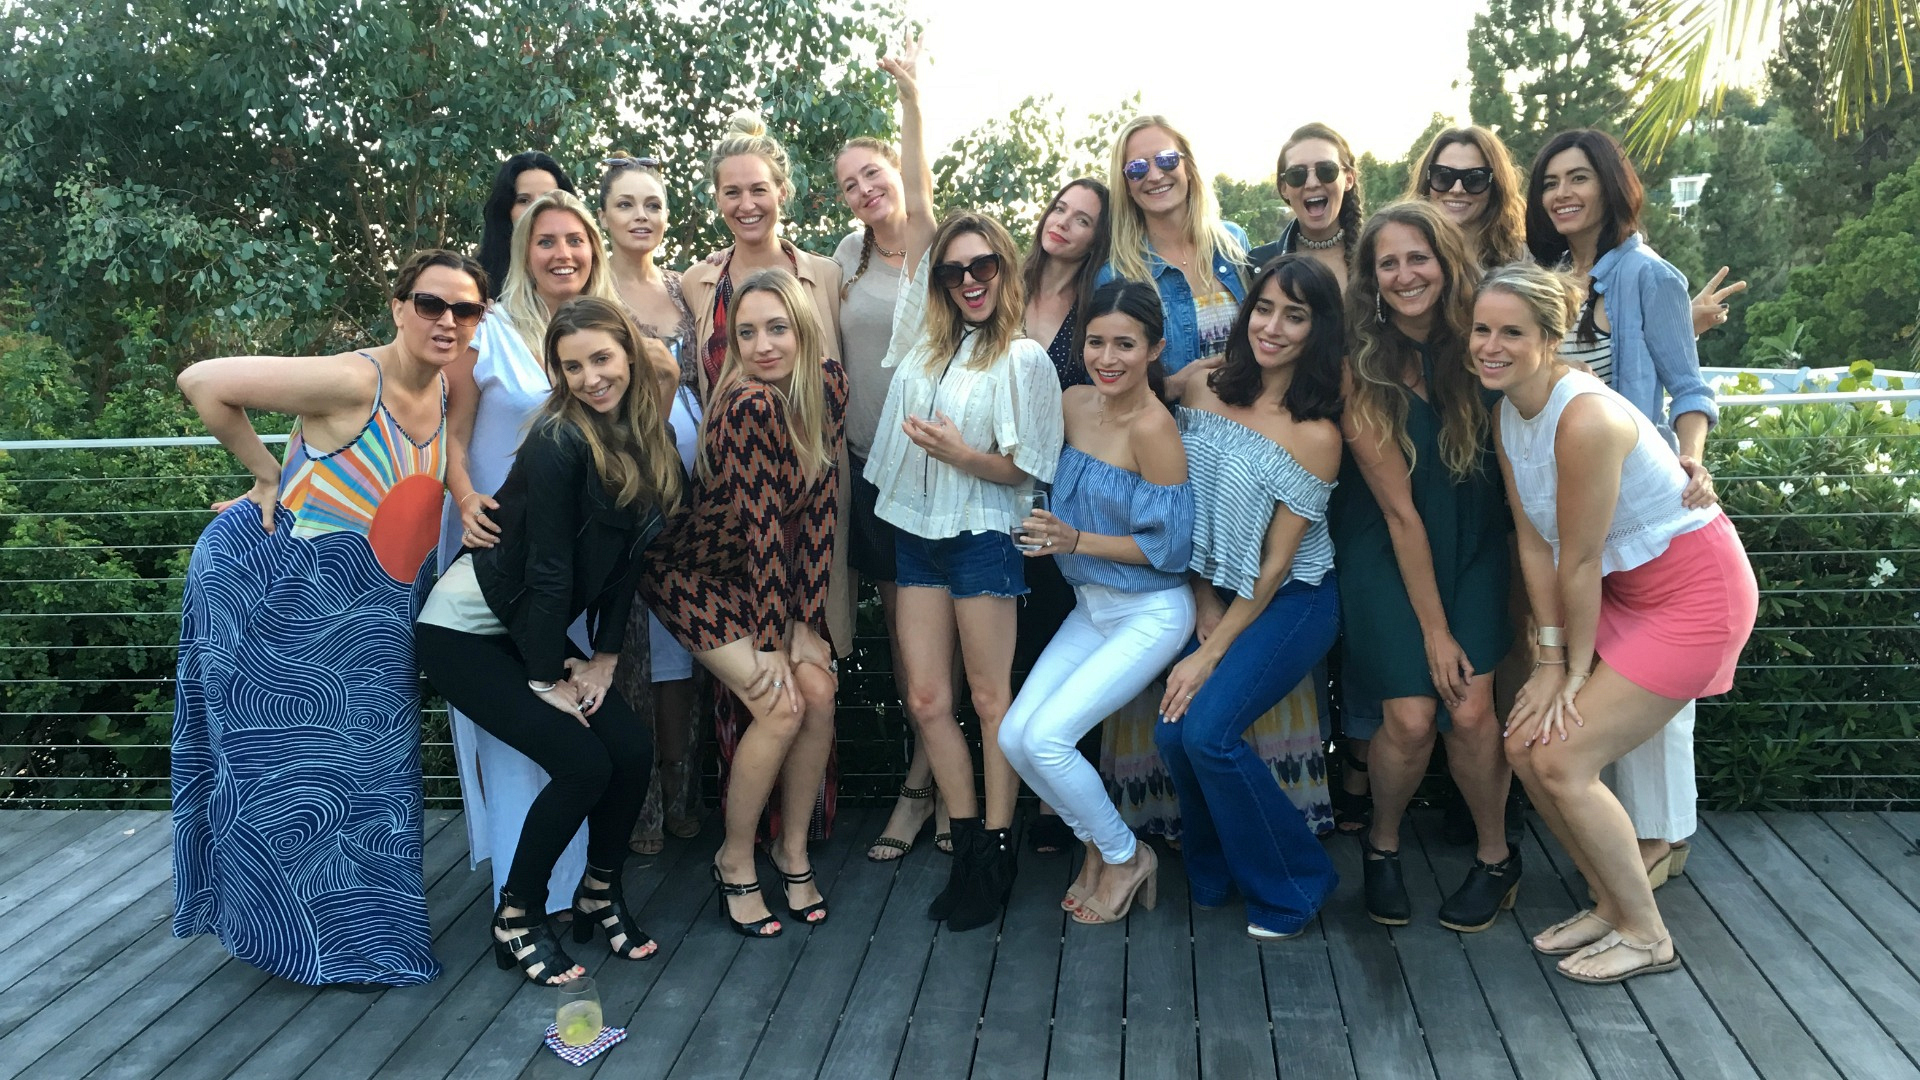 Elizabeth Hendrickson spent her birthday surrounded by good friends.